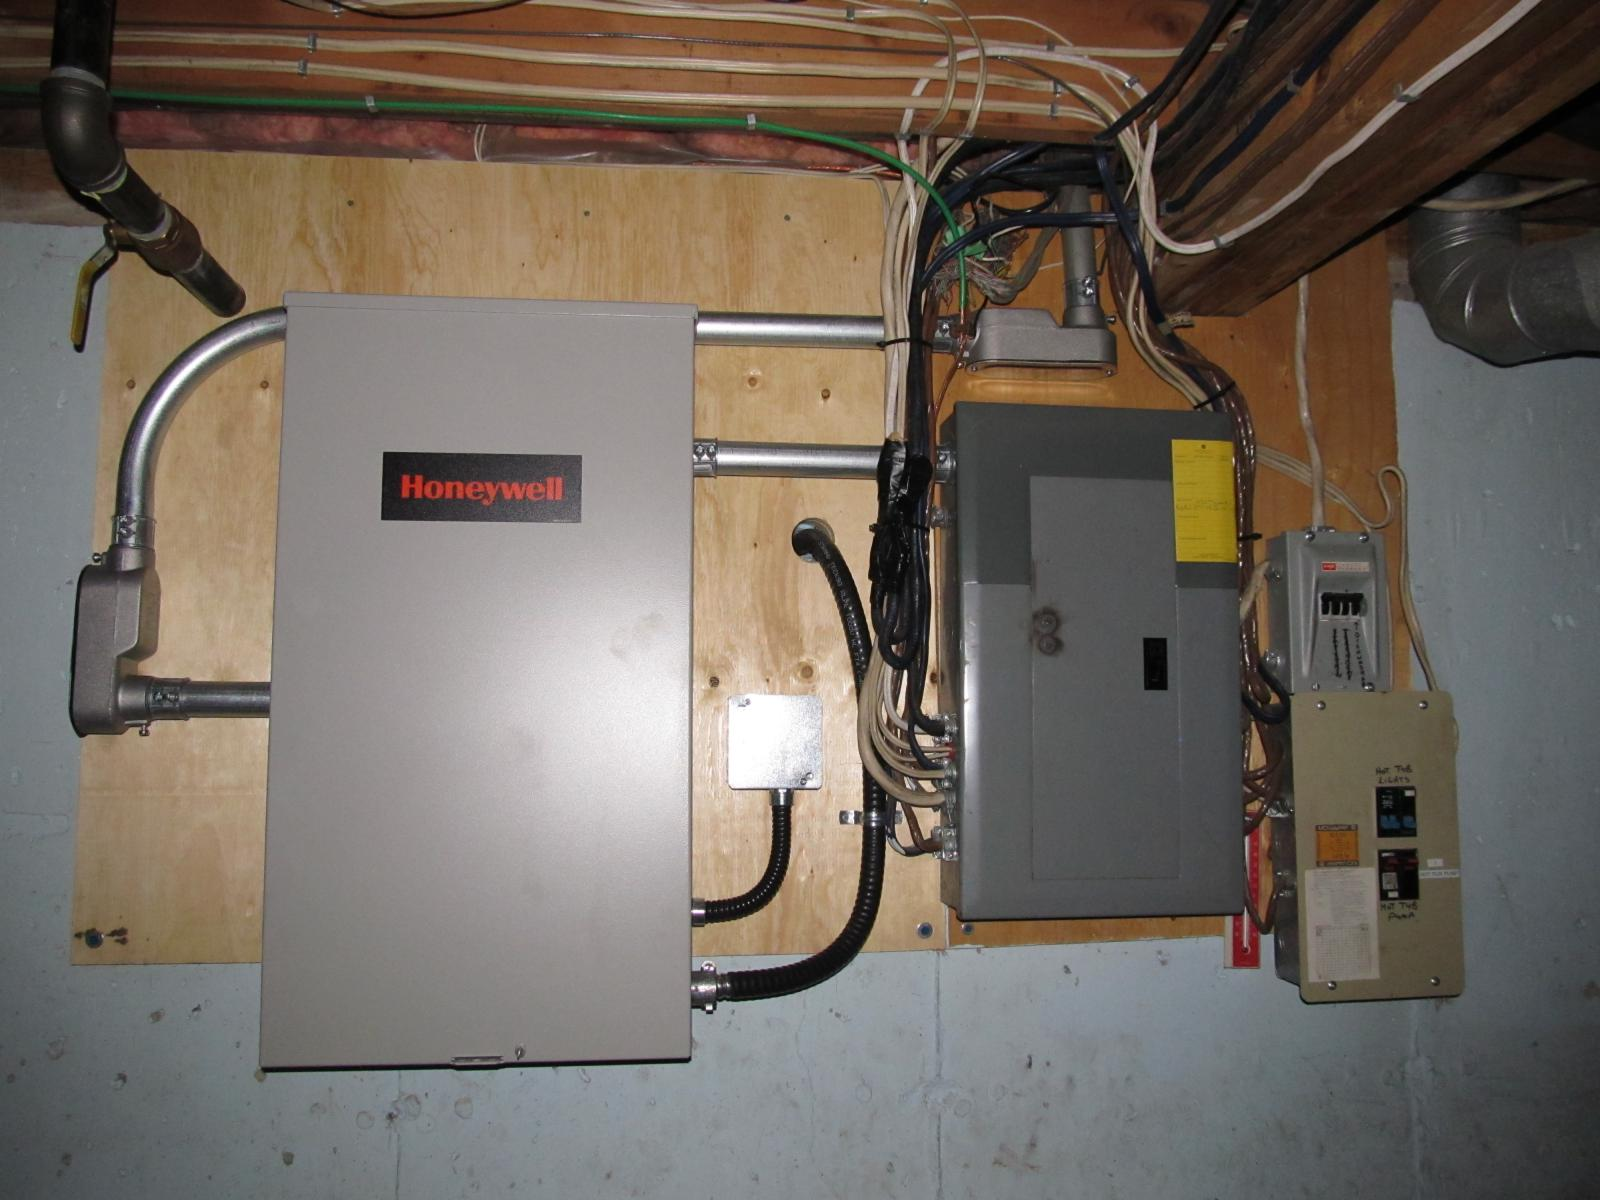 C B Ae F Cfb D D F Fd moreover A Shed Garage Alarm Med moreover C B Ae F Cfb D D F Fd Electrical Projects Electrical Wiring additionally Rheostat Wiring Diagram Of Rheostat Wiring Diagram additionally Generac Generator And Transfer Switch Installation By First Class Electric. on standby generator wiring diagram